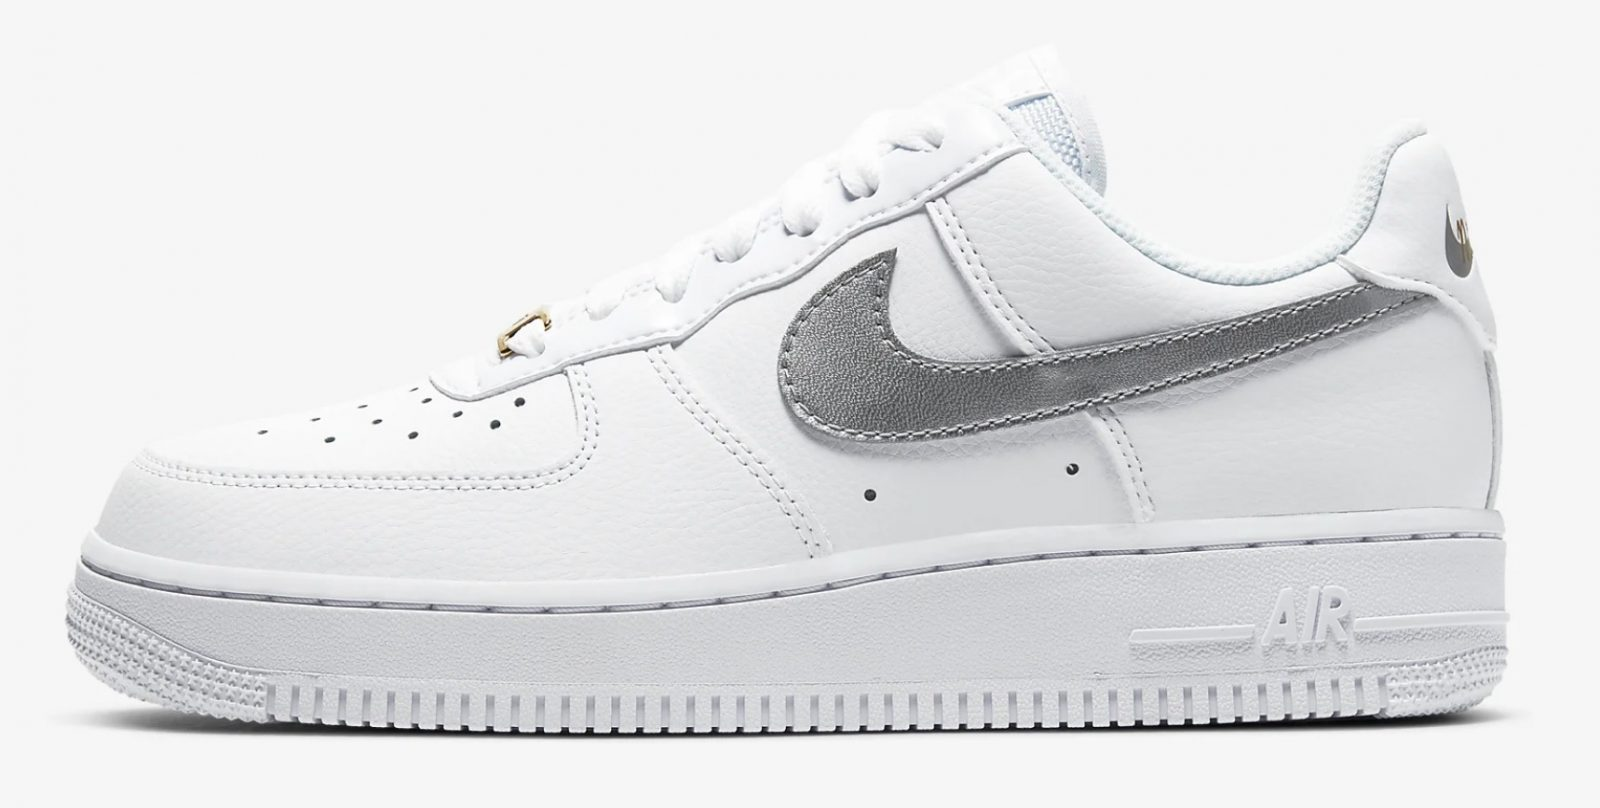 CT2549-100 Mix Silver & Gold Together In Style On This Brand New Nike Air Force 1 side 1